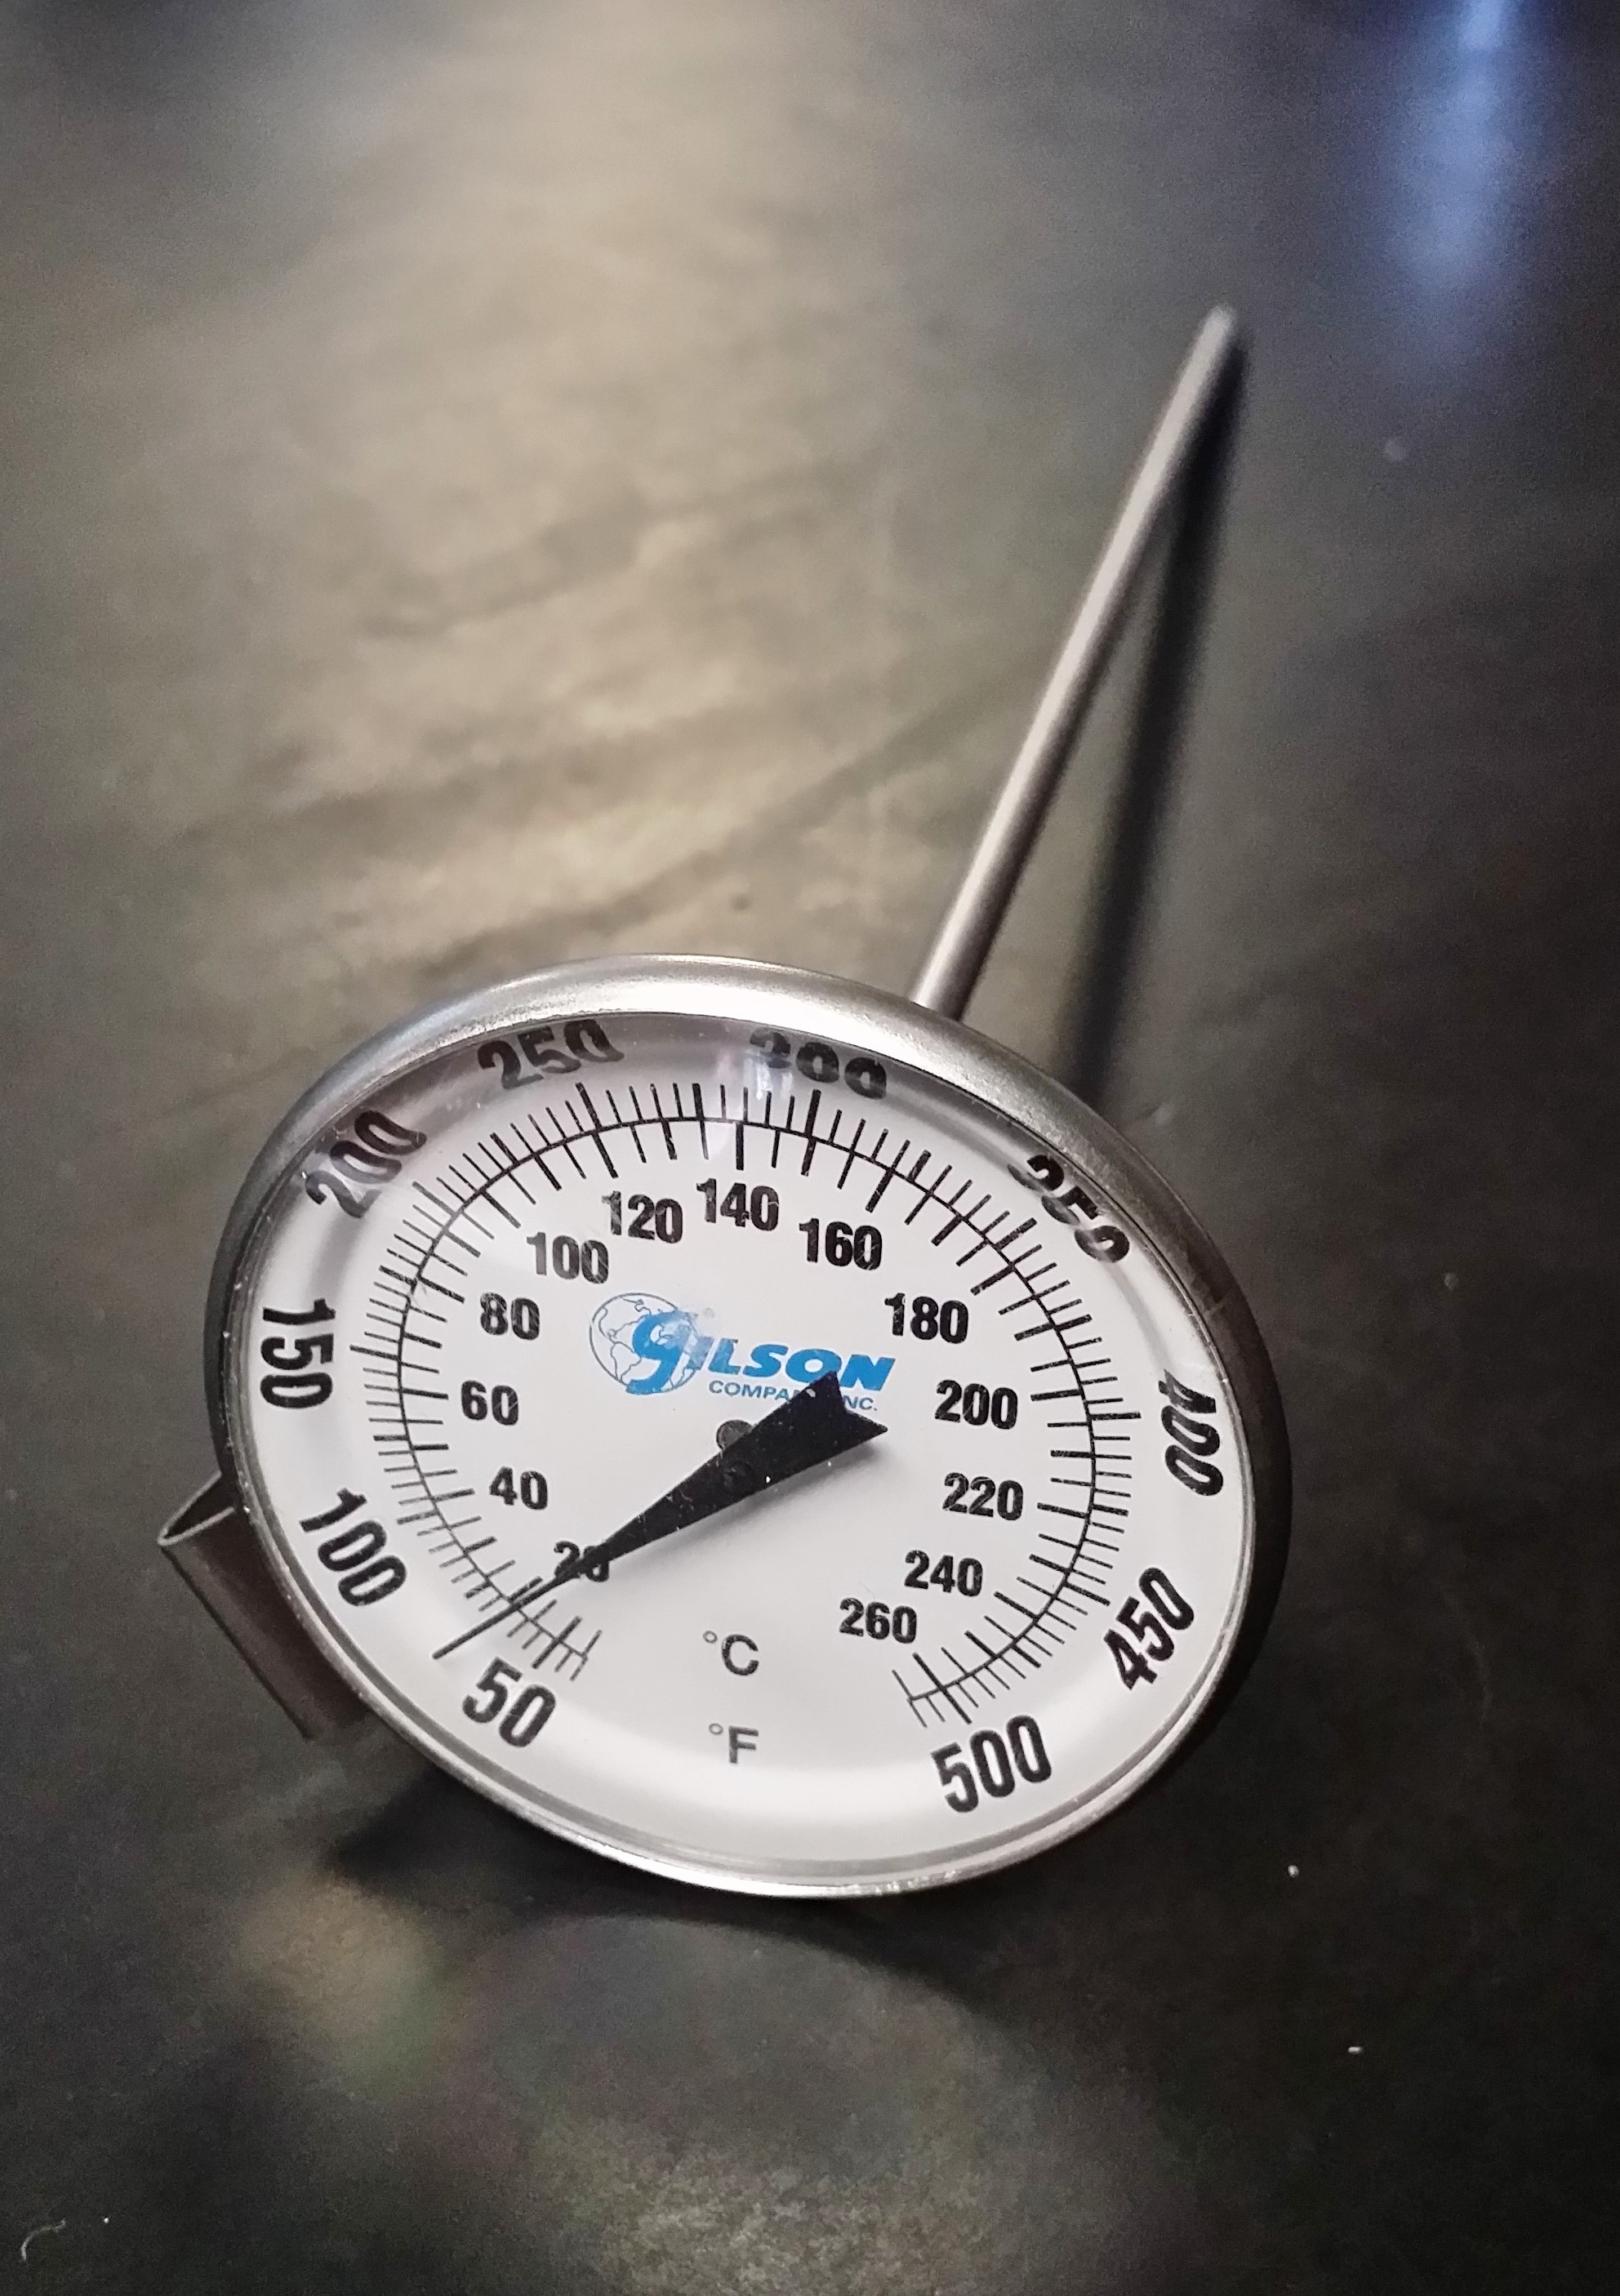 BI-METAL THERM 50 TO 500F 2IN DIAL X 8IN STEM DUAL SCALE